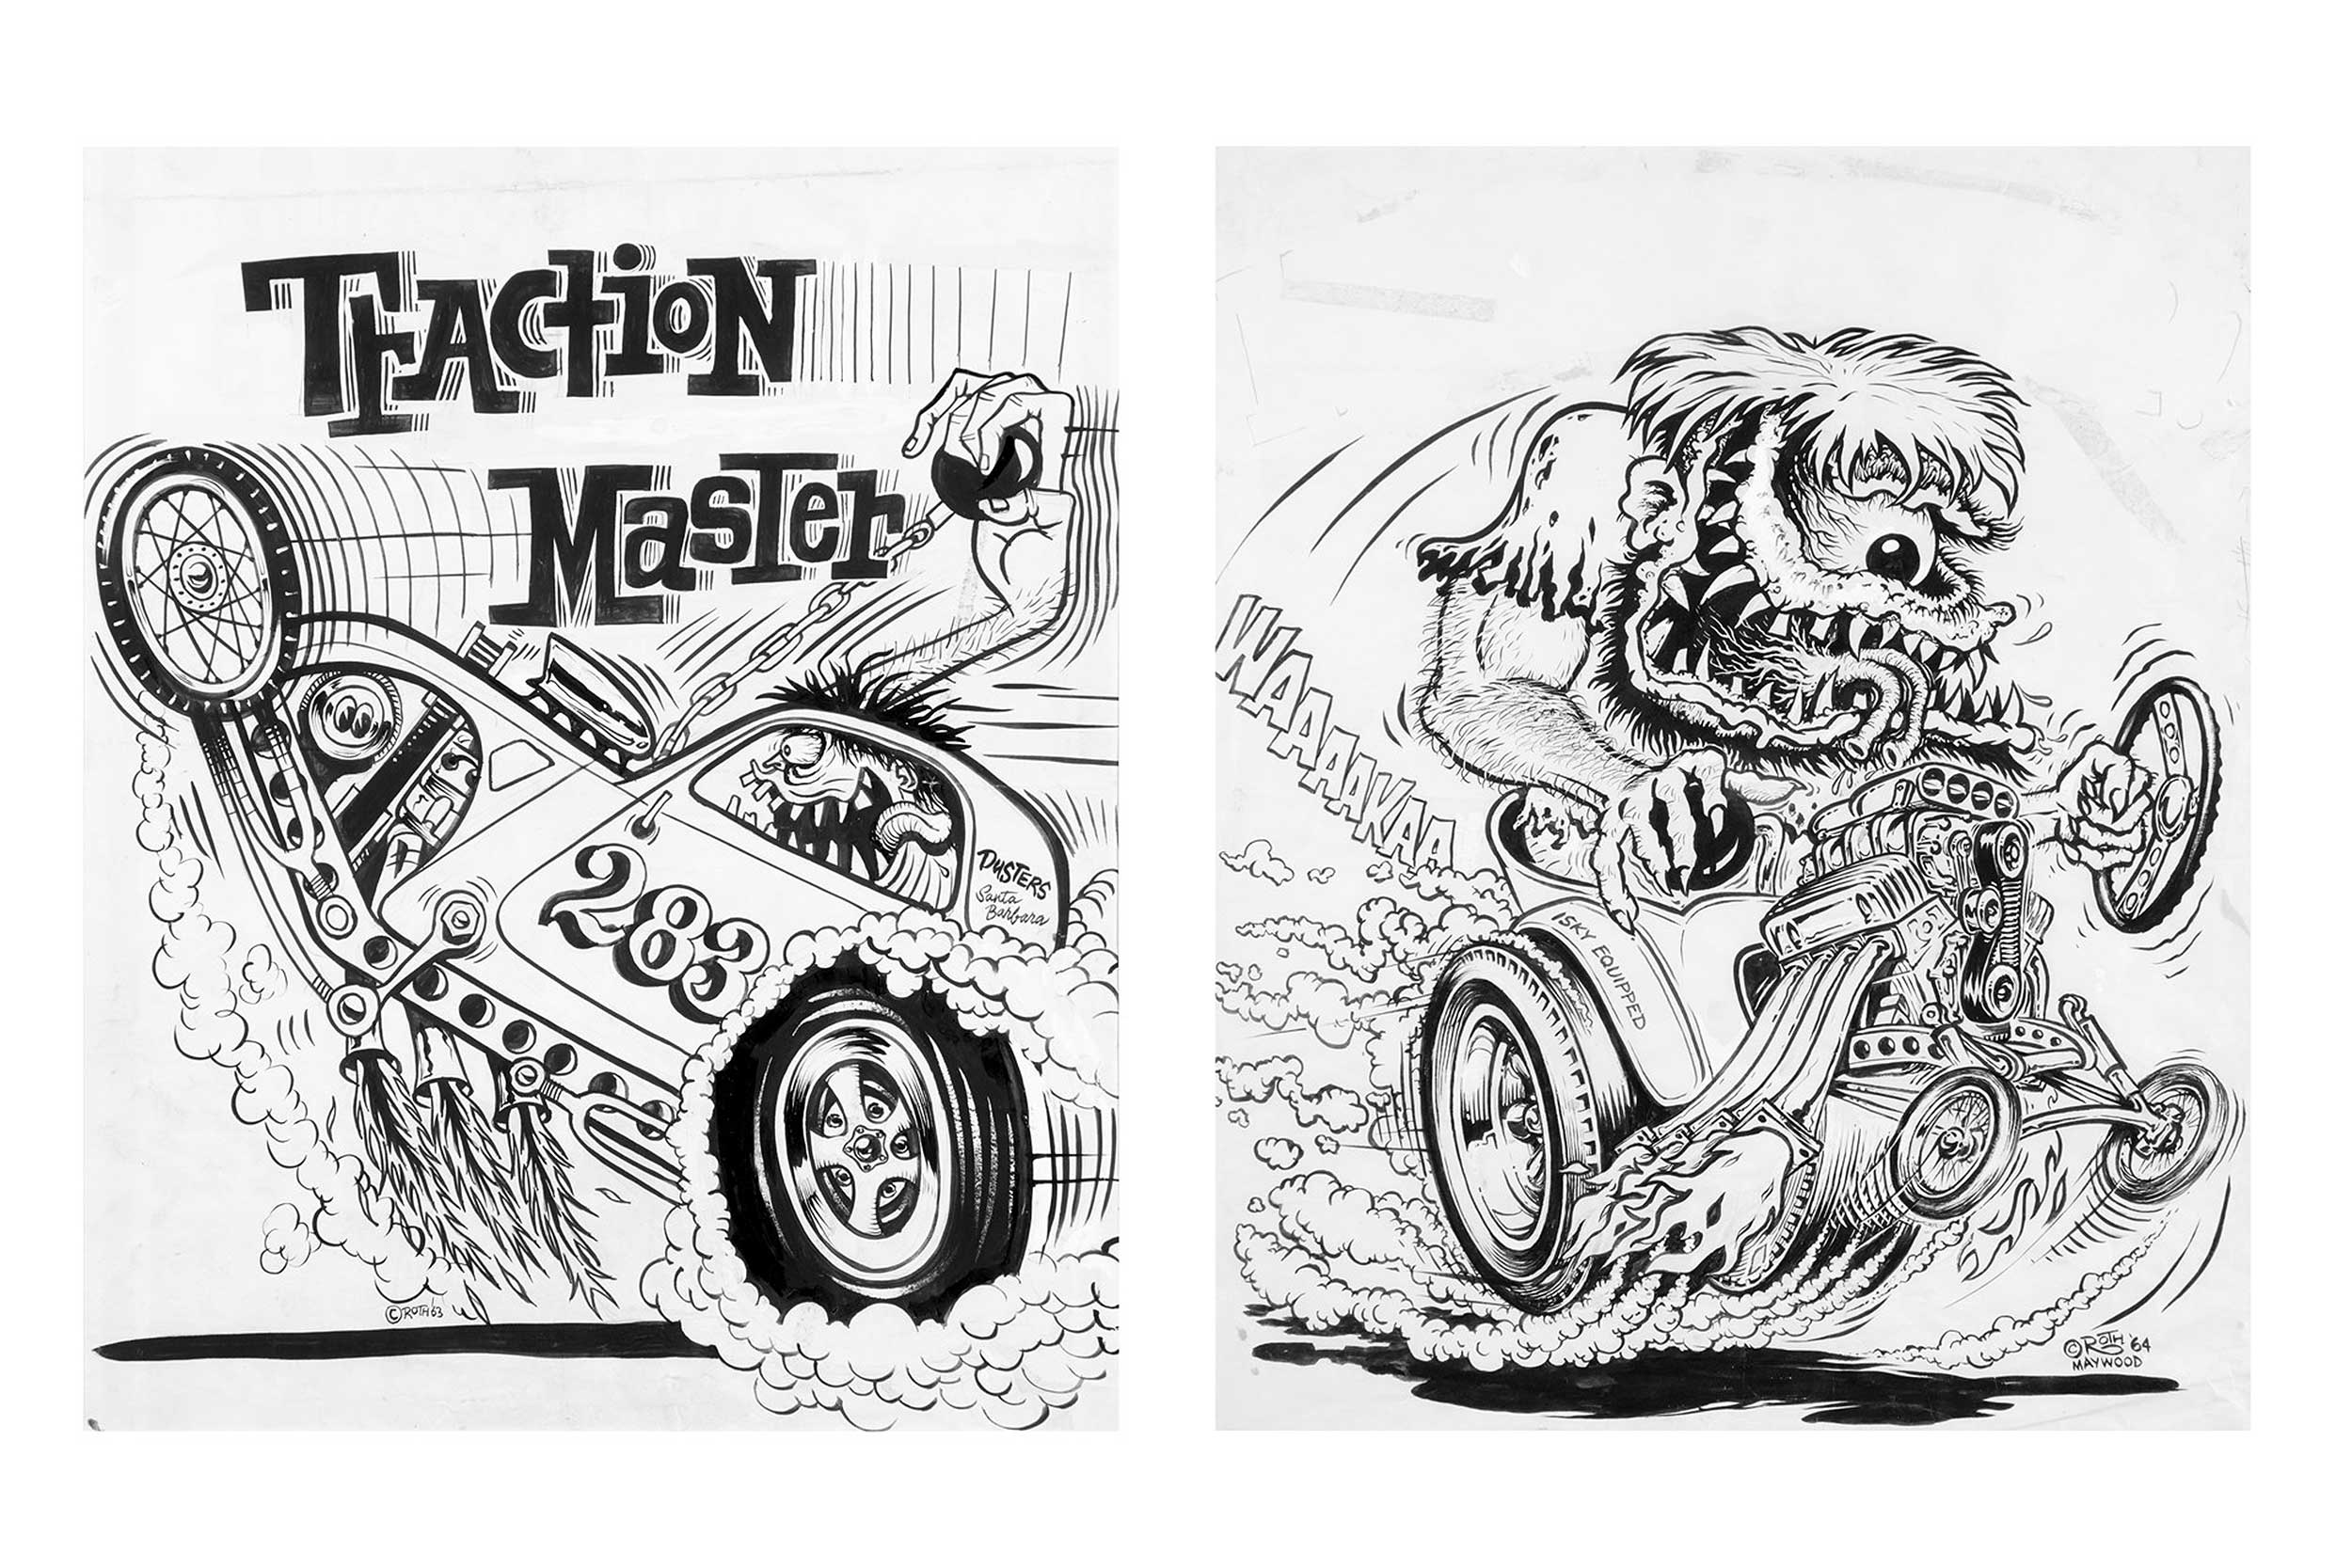 Traction Master and Isky Equipped by Roth Studios, 1963